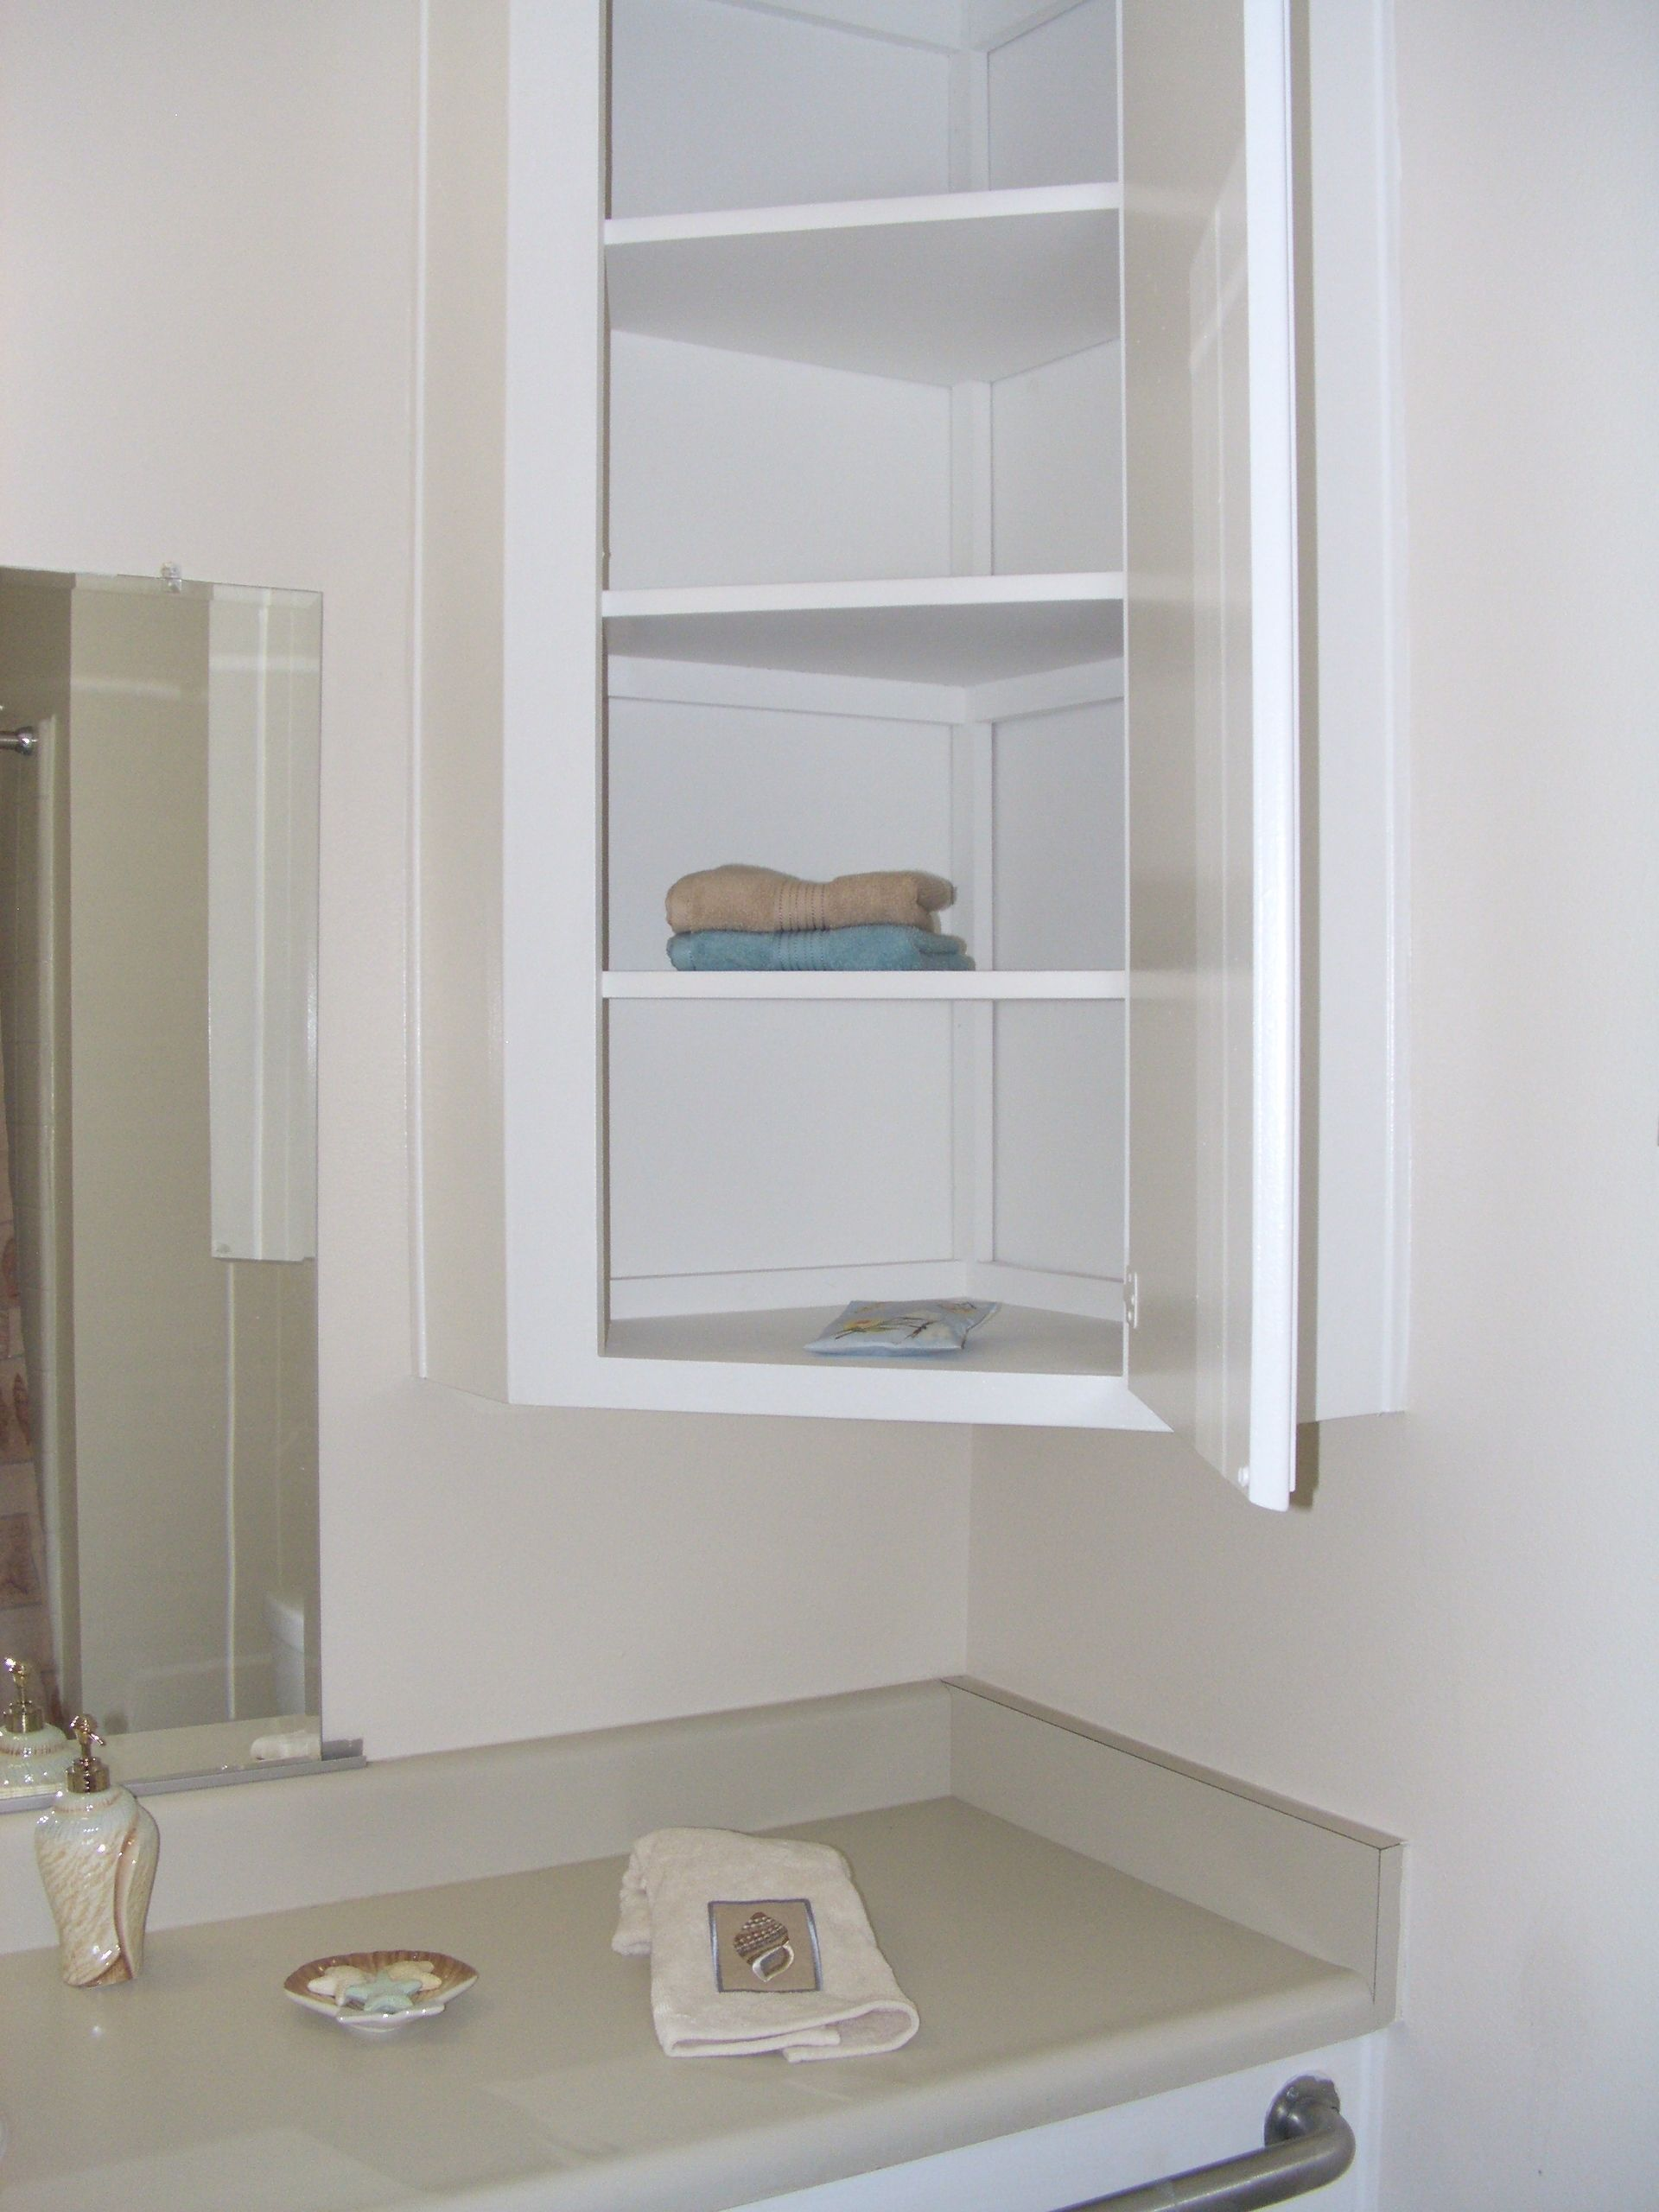 Furniture Wall Mounted Bathroom Corner Cabinet With Shelf And Within Dimensions 1 Bathroom Corner Cabinet Wall Mounted Bathroom Cabinets Bathroom Wall Cabinets